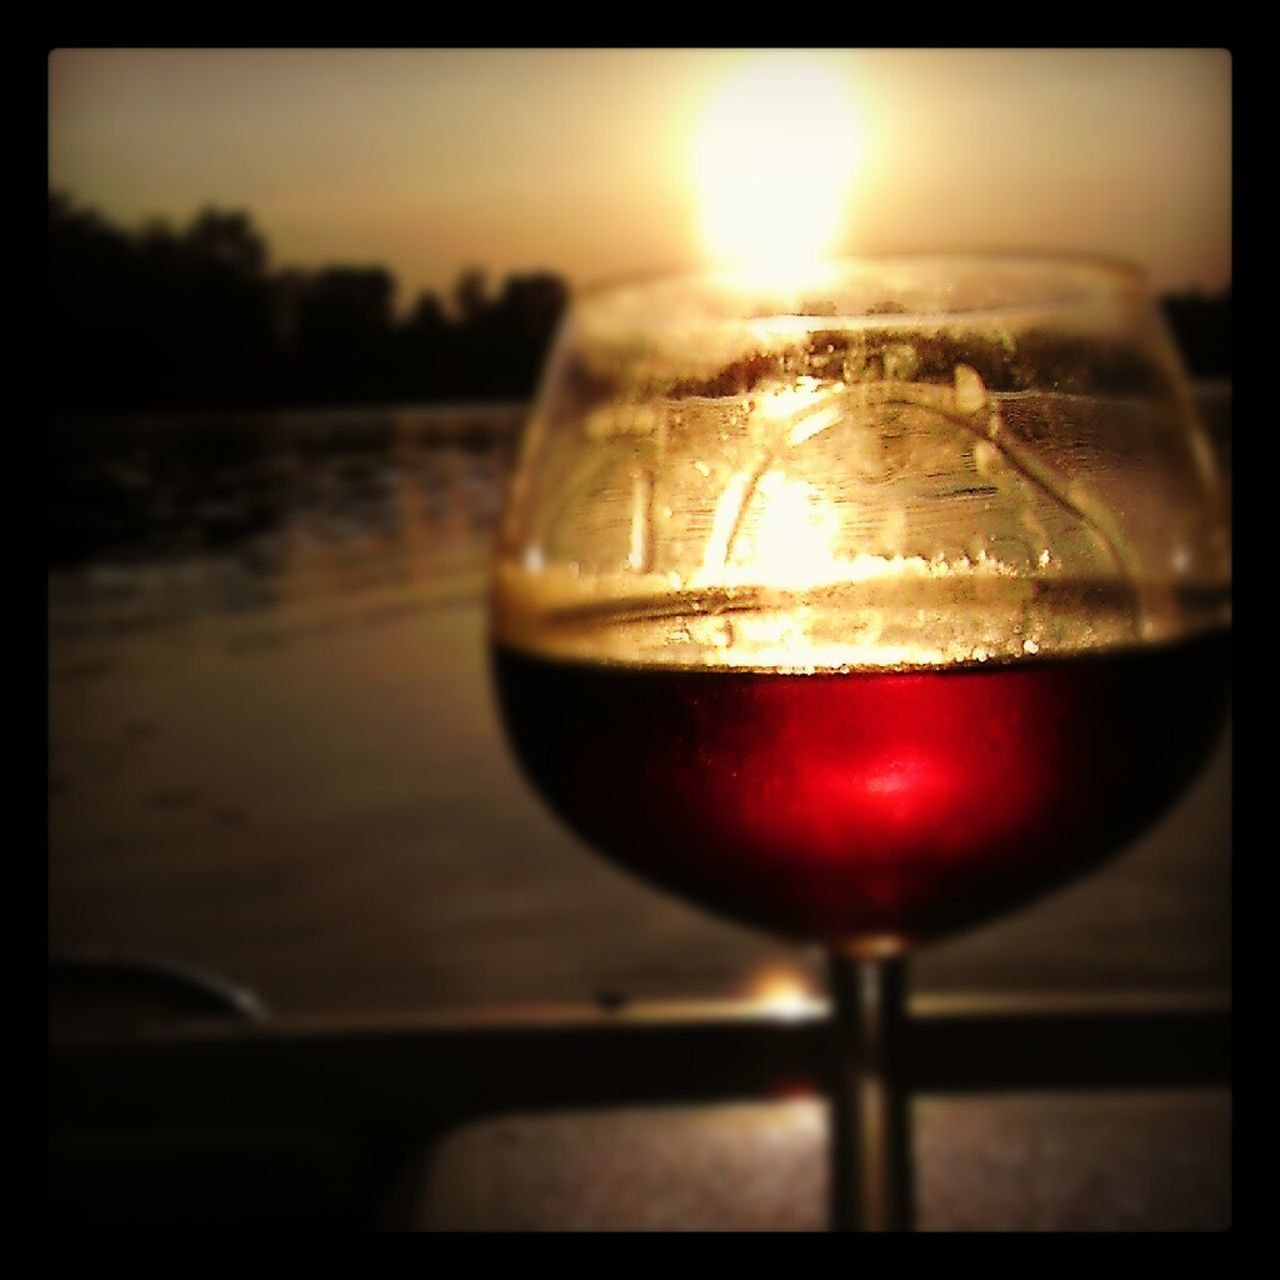 alcohol, close-up, wine, drink, refreshment, no people, wineglass, alcoholic drink, sunset, drinking glass, focus on foreground, food and drink, outdoors, water, night, nature, sky, freshness